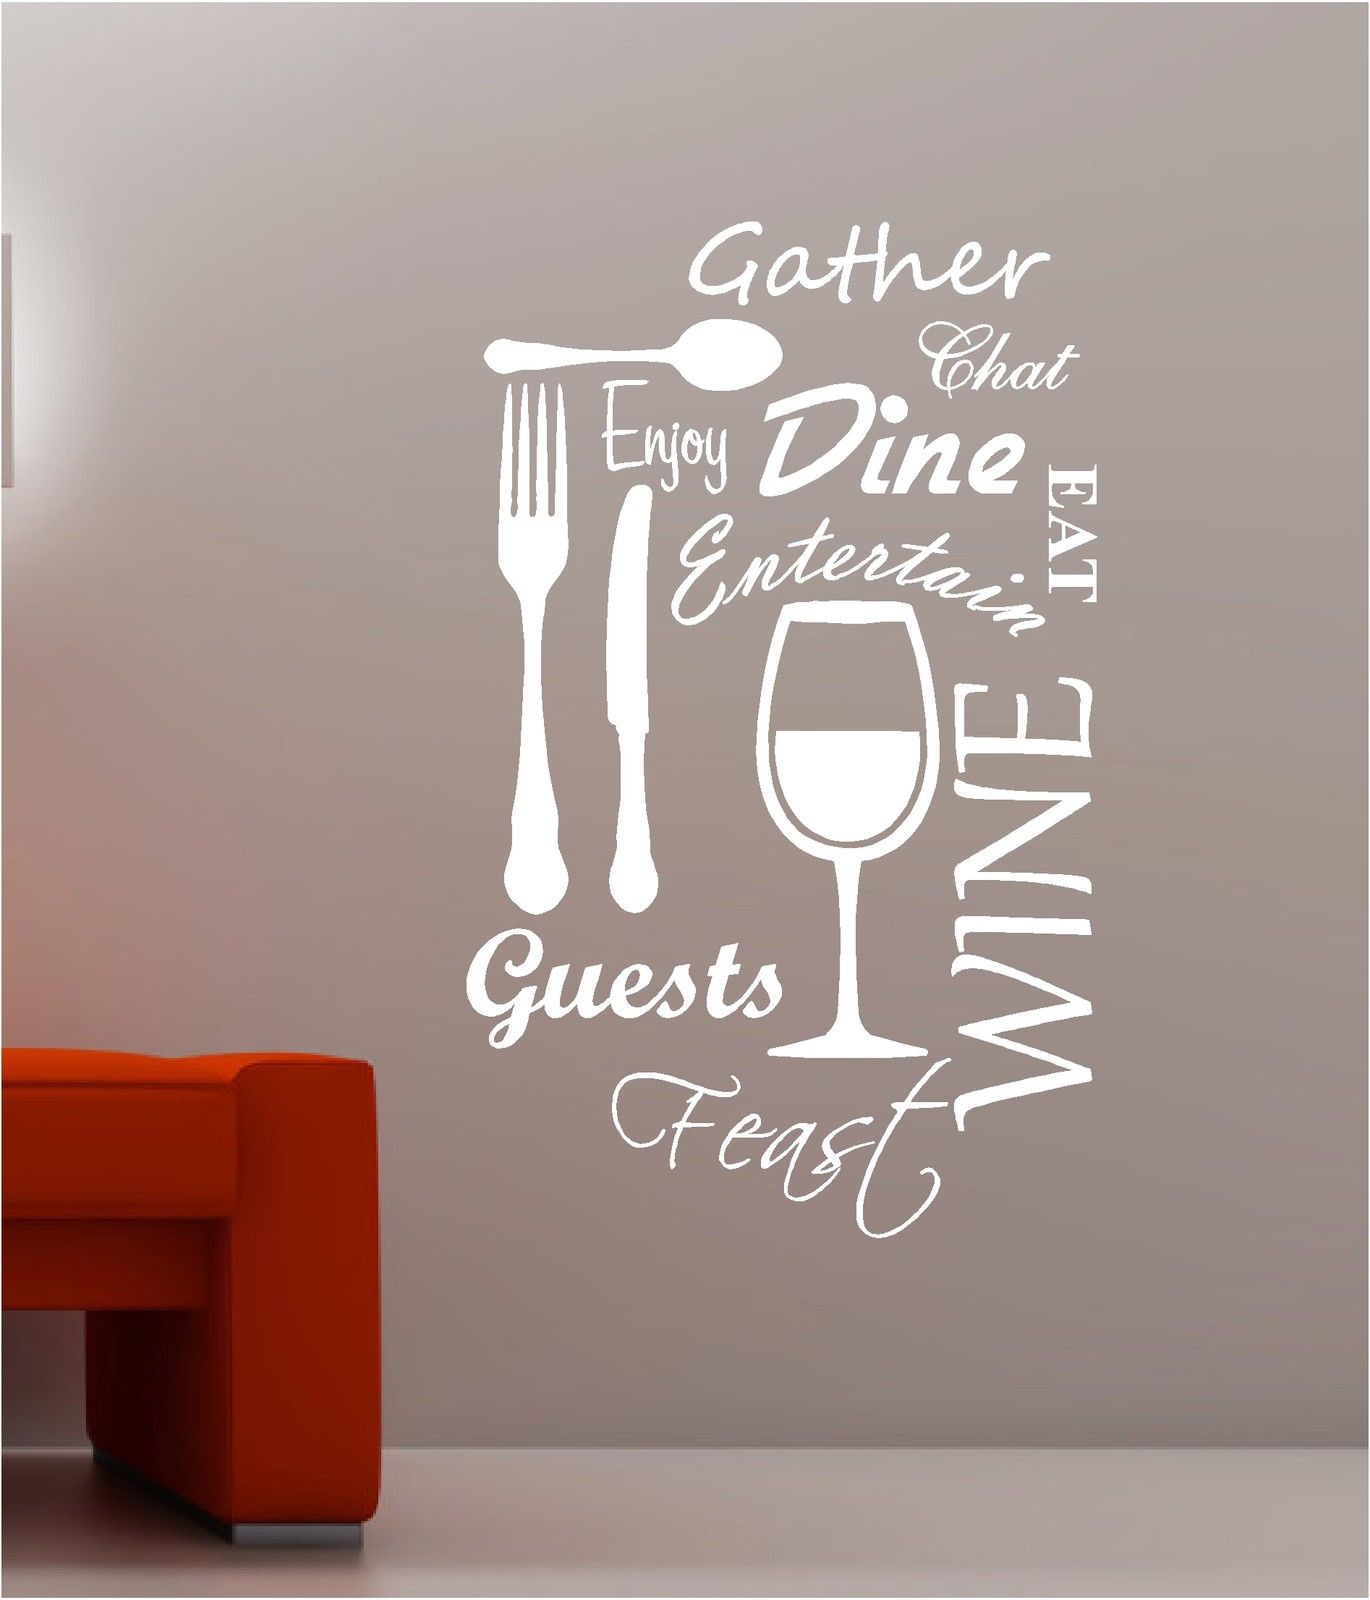 Superbe B43 Kitchen Word Vinyl Wall Art Stickers Dining Food Wine Quotes Wall  Decals Restaurant Decoration Mural Home Decor In Wall Stickers From Home U0026  Garden On ...